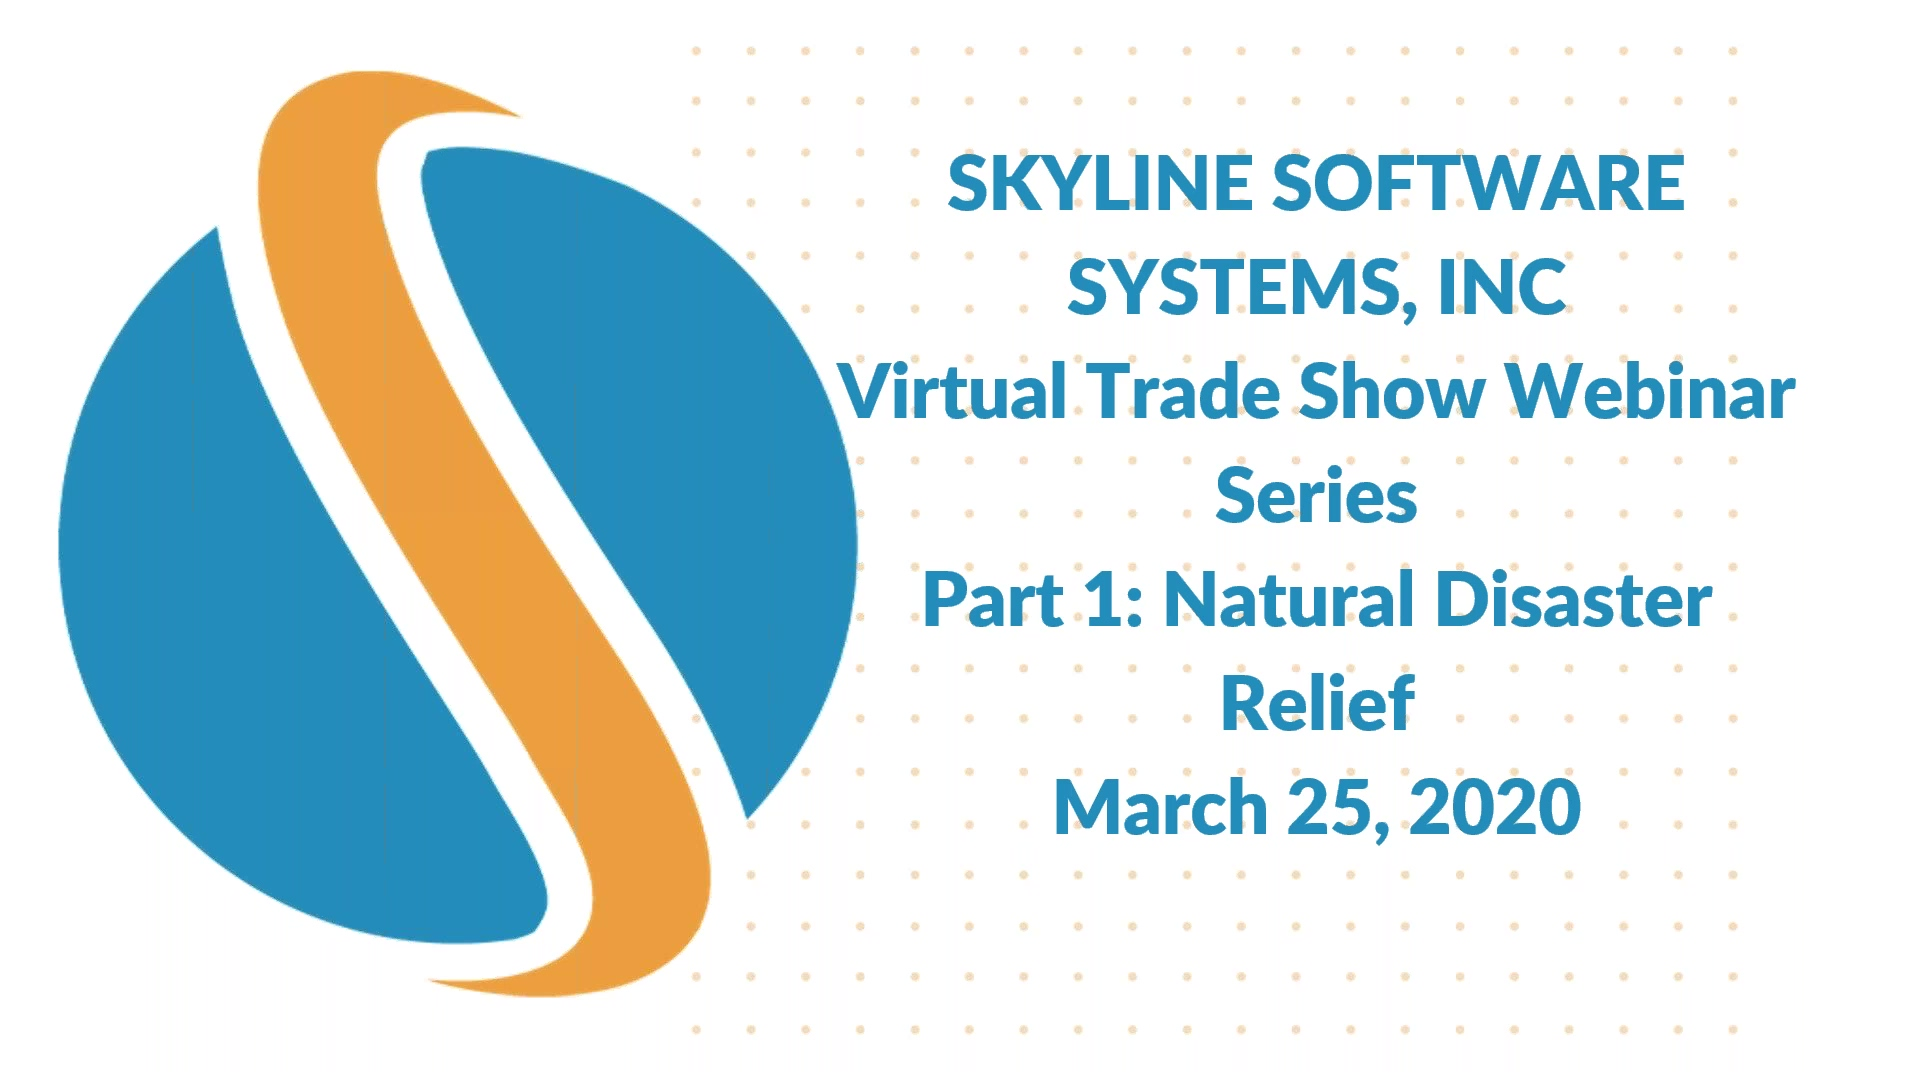 Skyline Software Systems Virtual Trade Show Series_ Part 1 Natural Disaster Relief